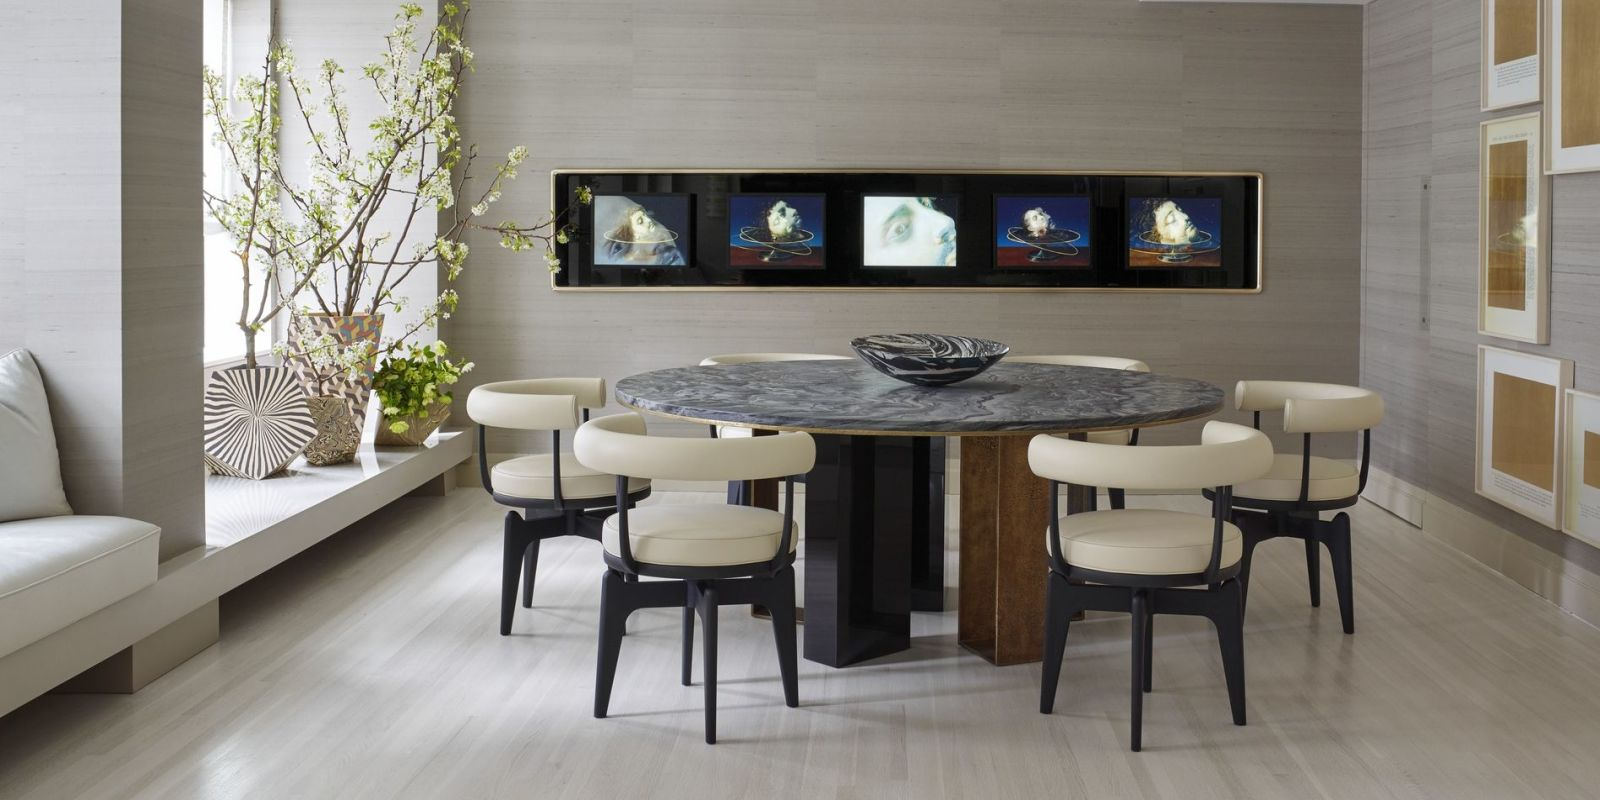 25 modern dining room decorating ideas contemporary for Modern dining room table